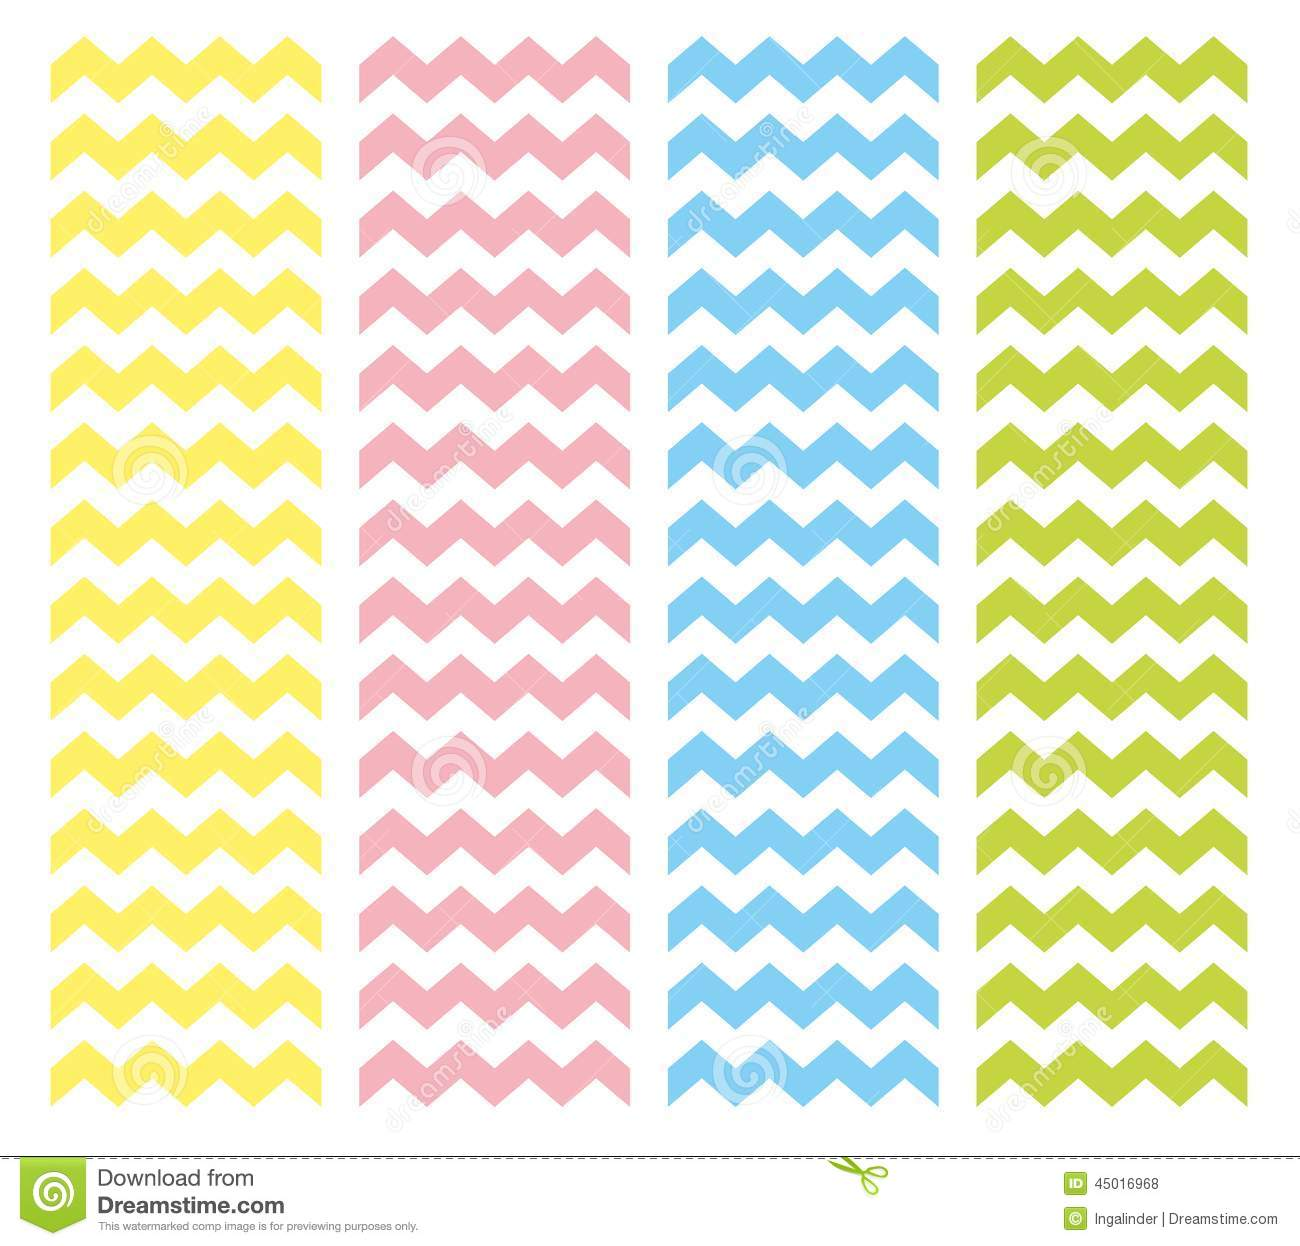 Zig zag chevron pattern vector set. Pastel pink, blue, yellow and ...